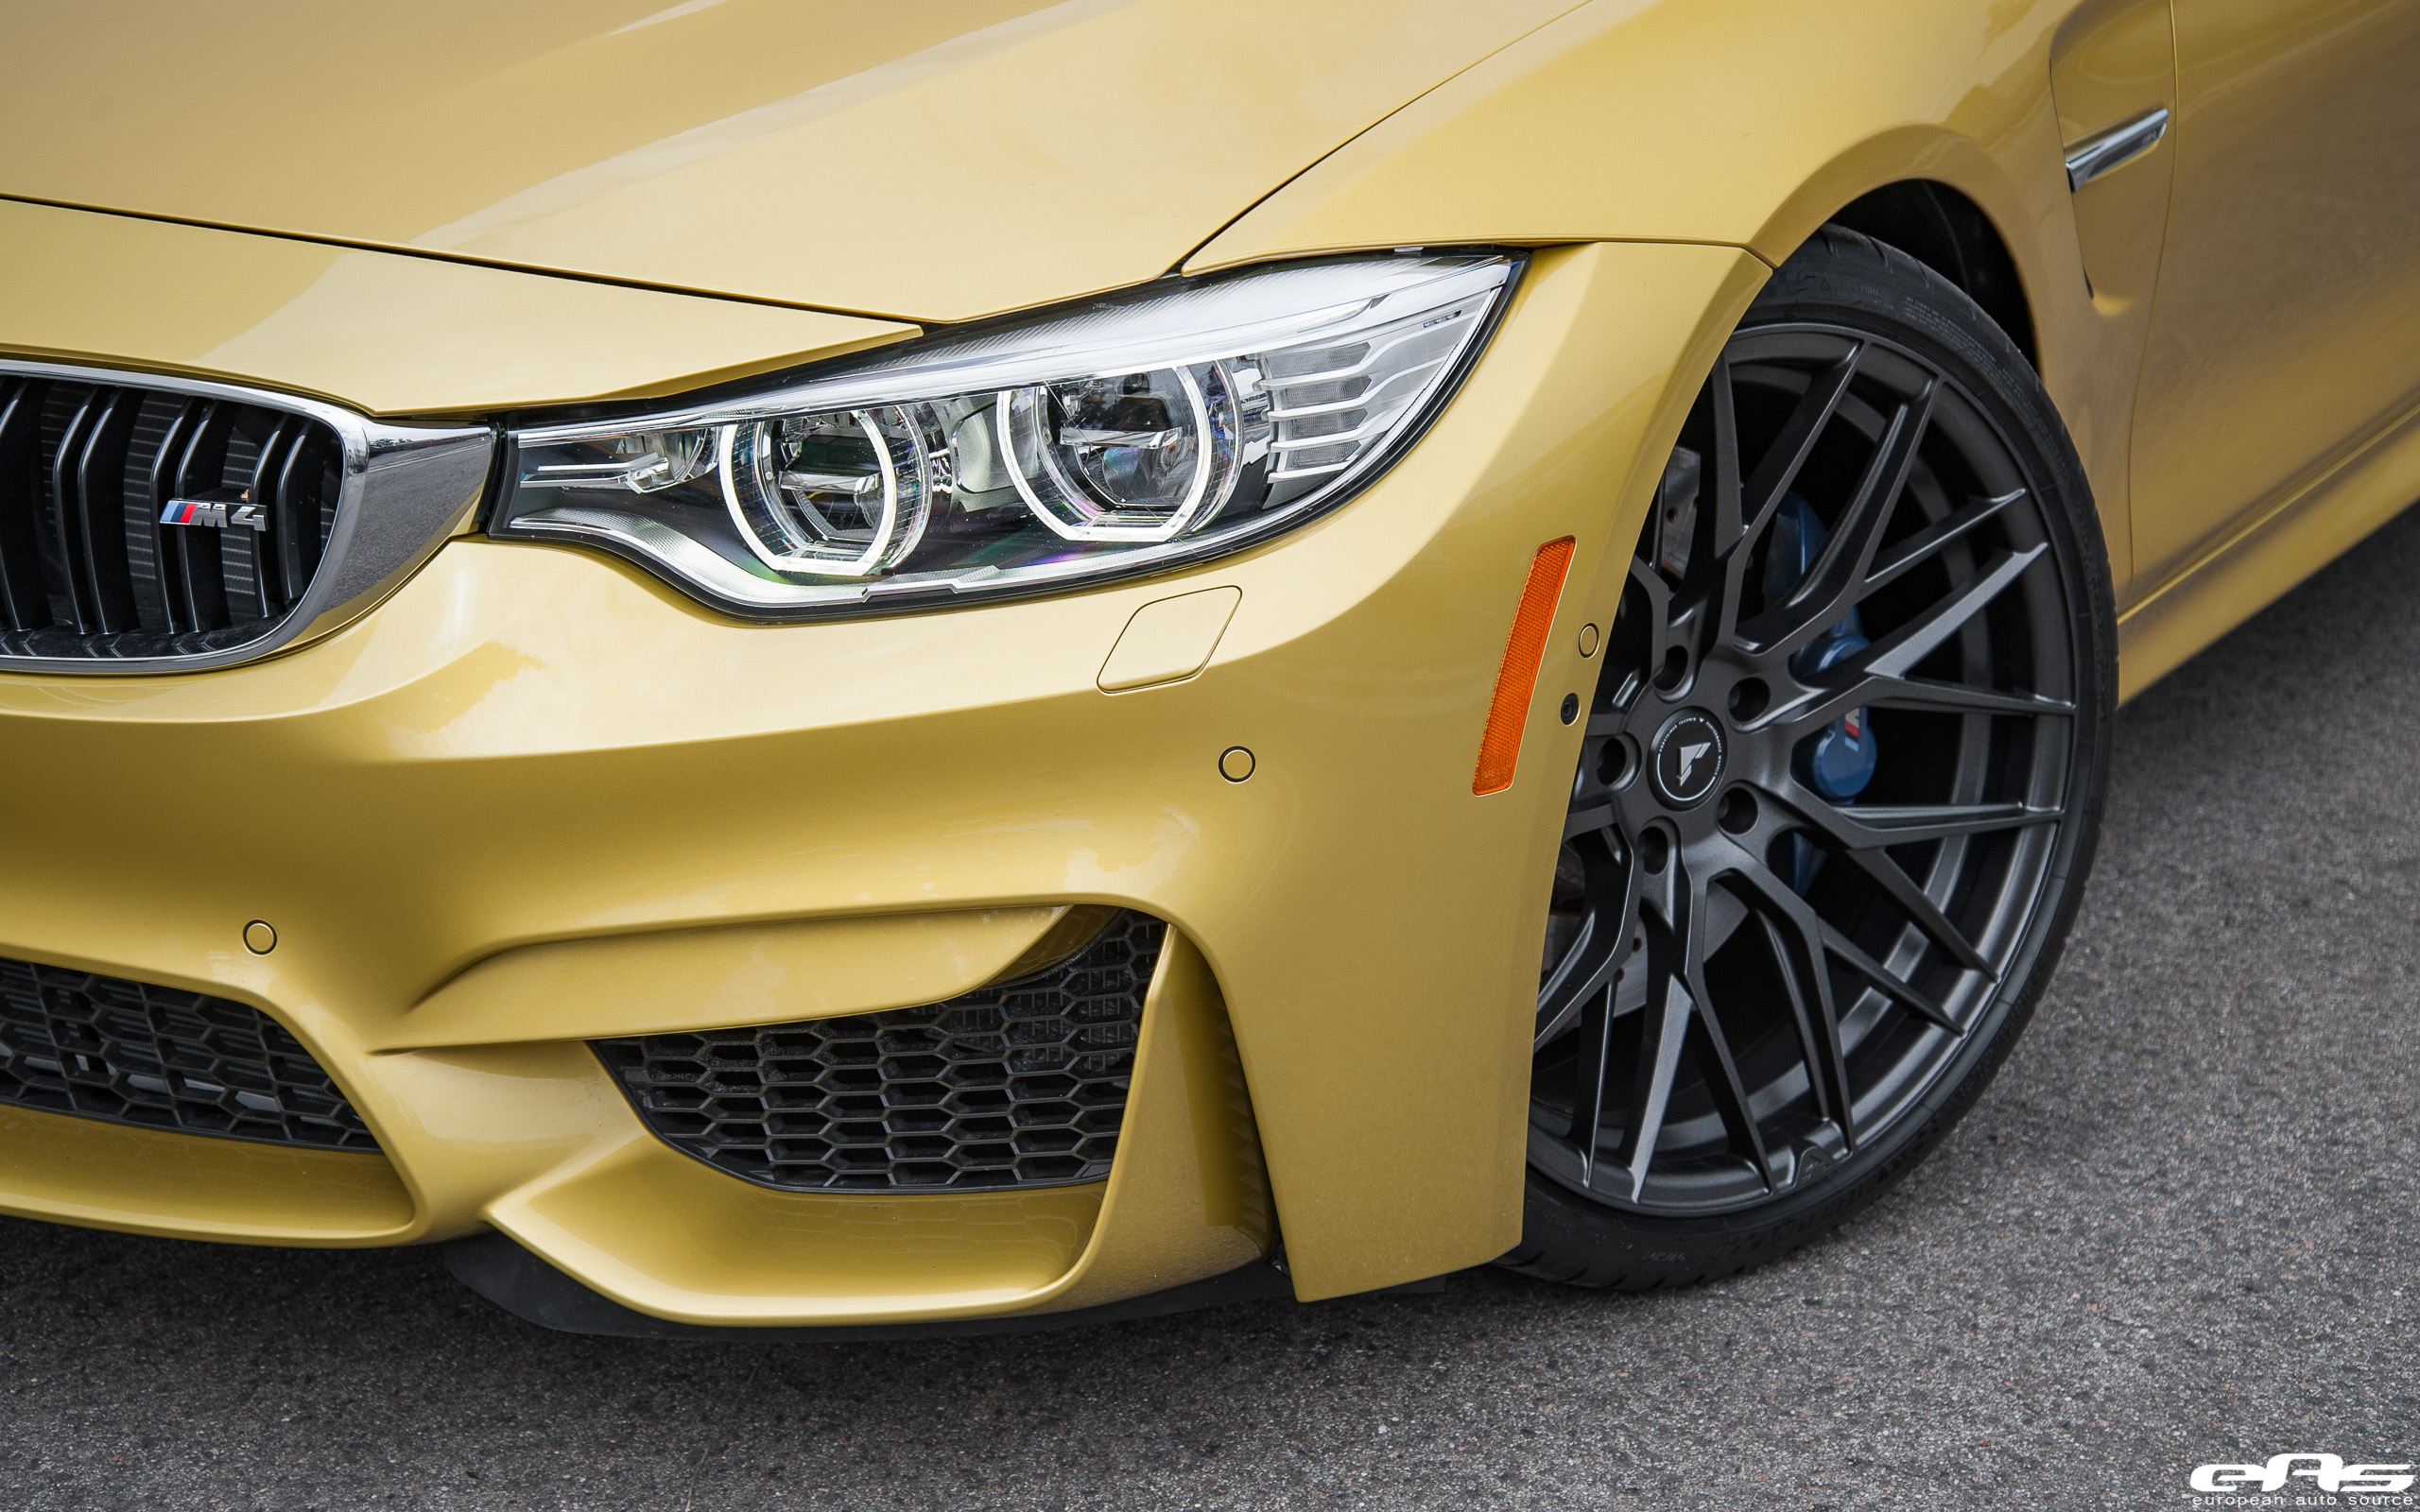 F82 BMW M4 on Vorsteiner Wheels (4)